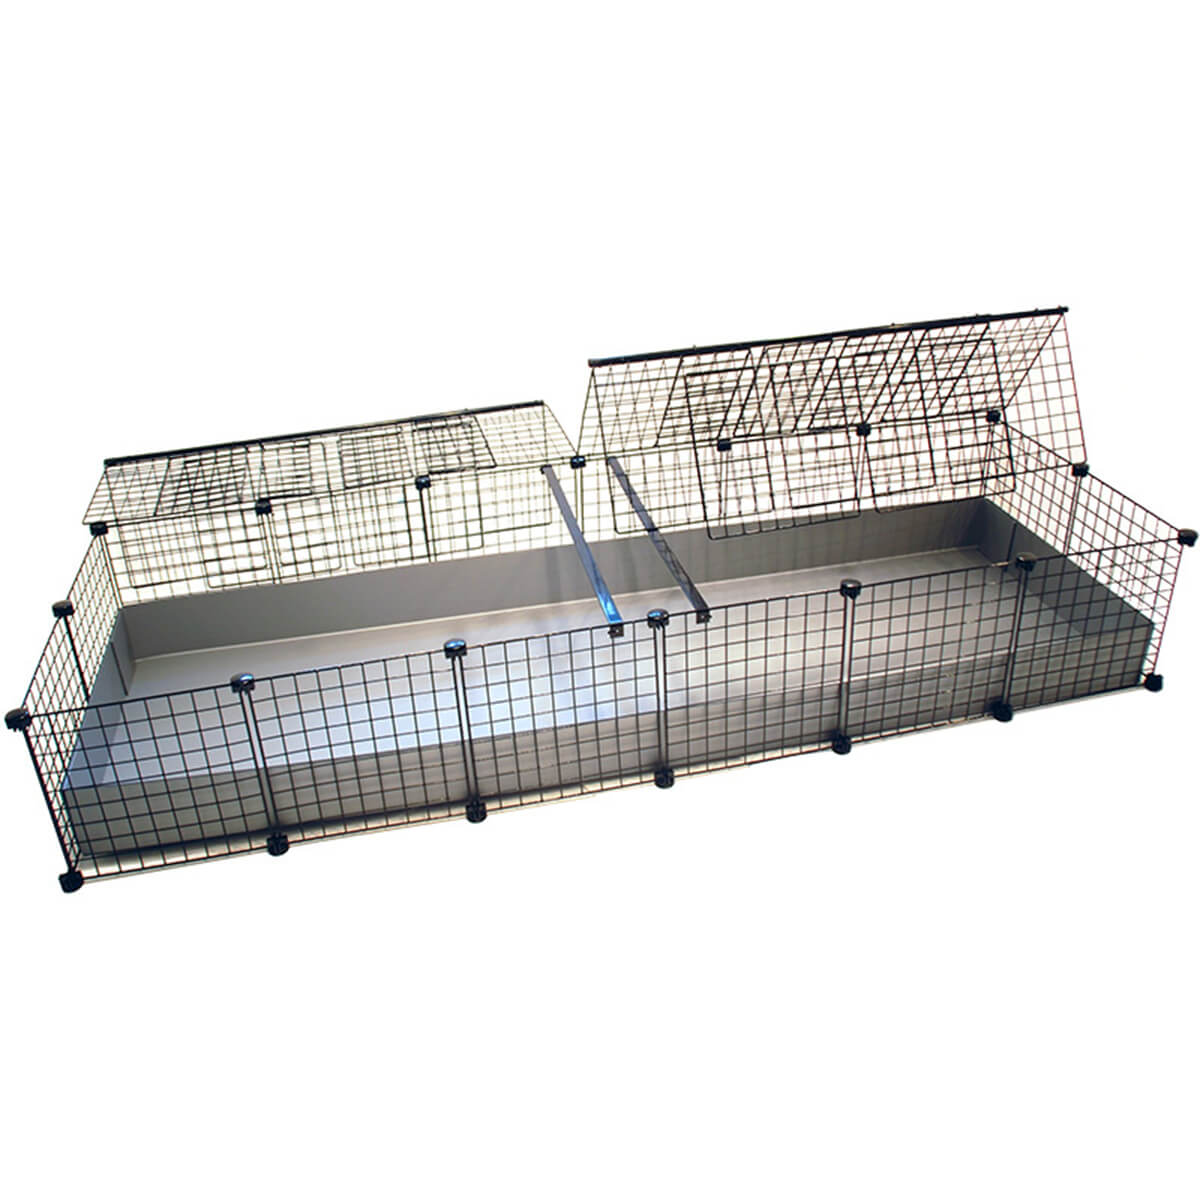 Jumbo 2x6 grids covered standard covered cages c c for Making a c c cage